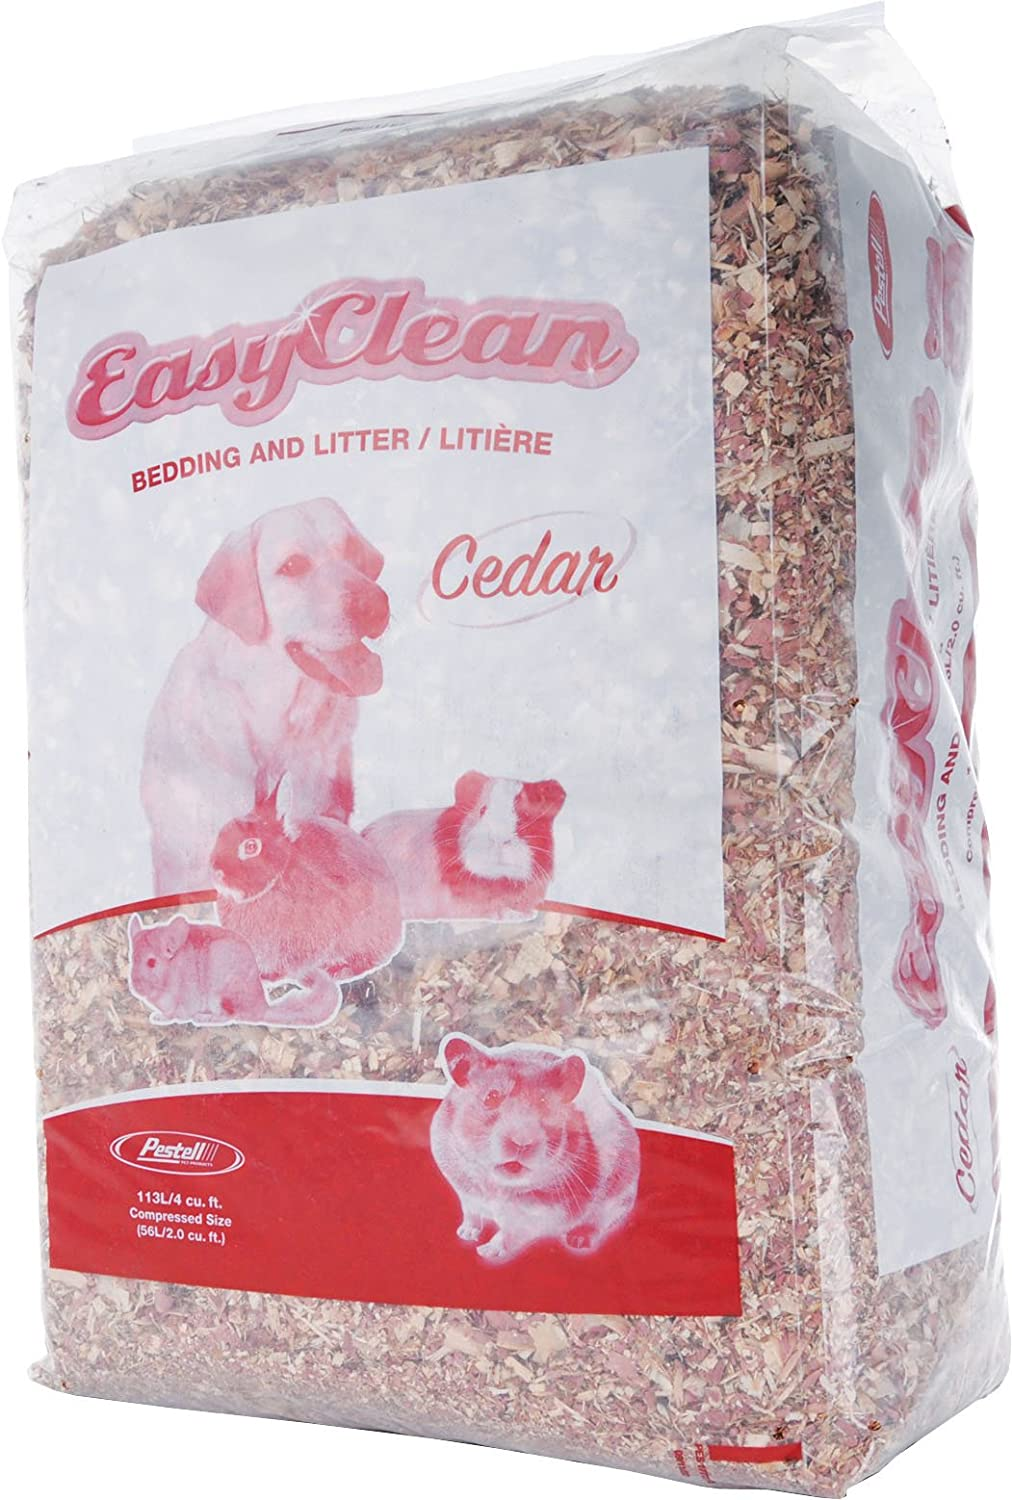 Pestell Pet Products Easy Clean Cedar Bedding 113 liters